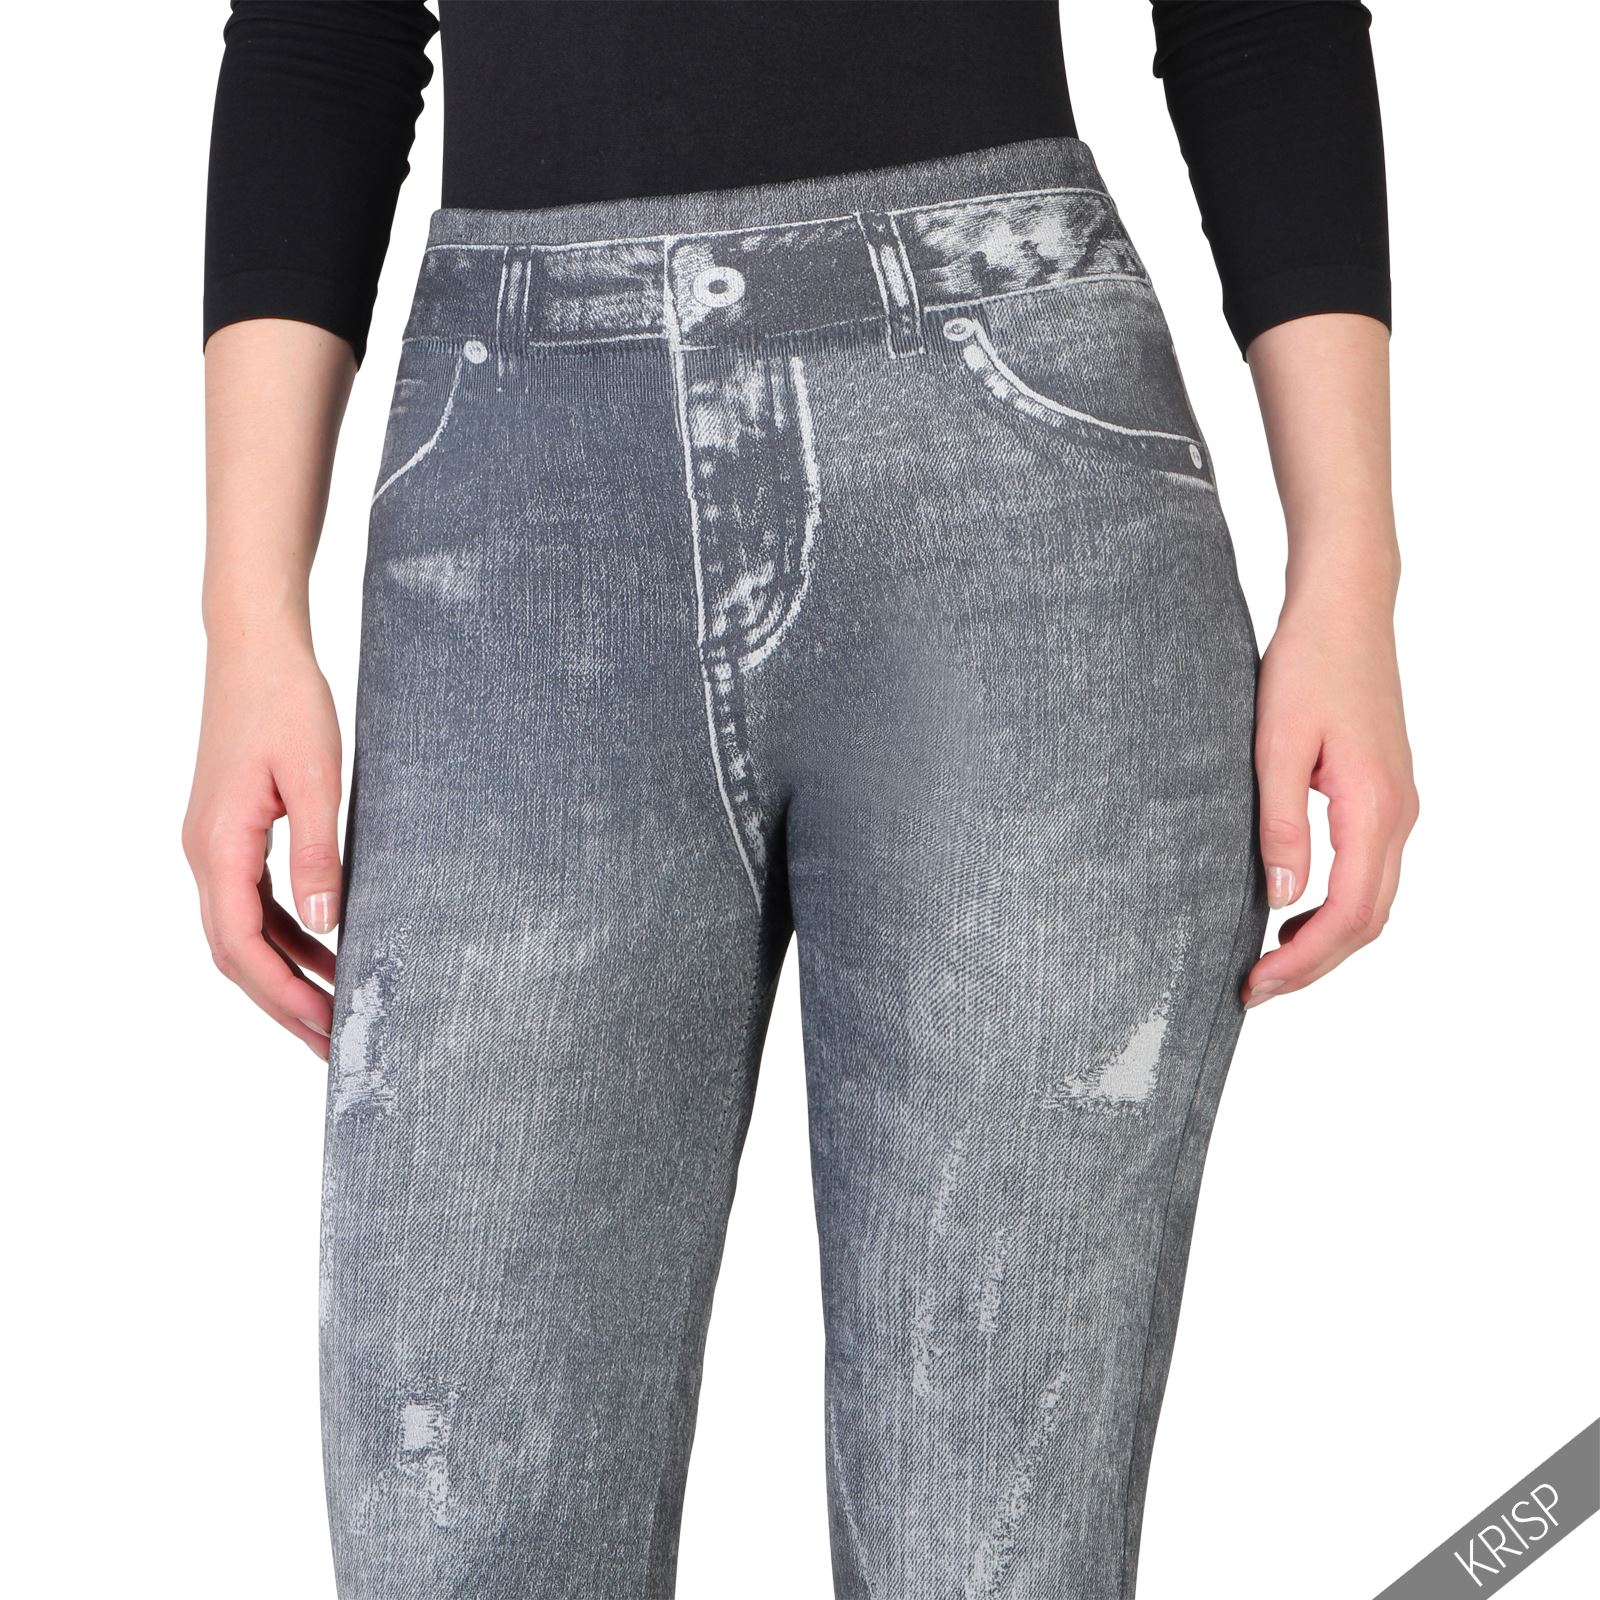 Womens-Warm-Fleece-Lined-Stretch-Denim-Jeans-Thermal-Winter-Leggings-Jeggings thumbnail 4